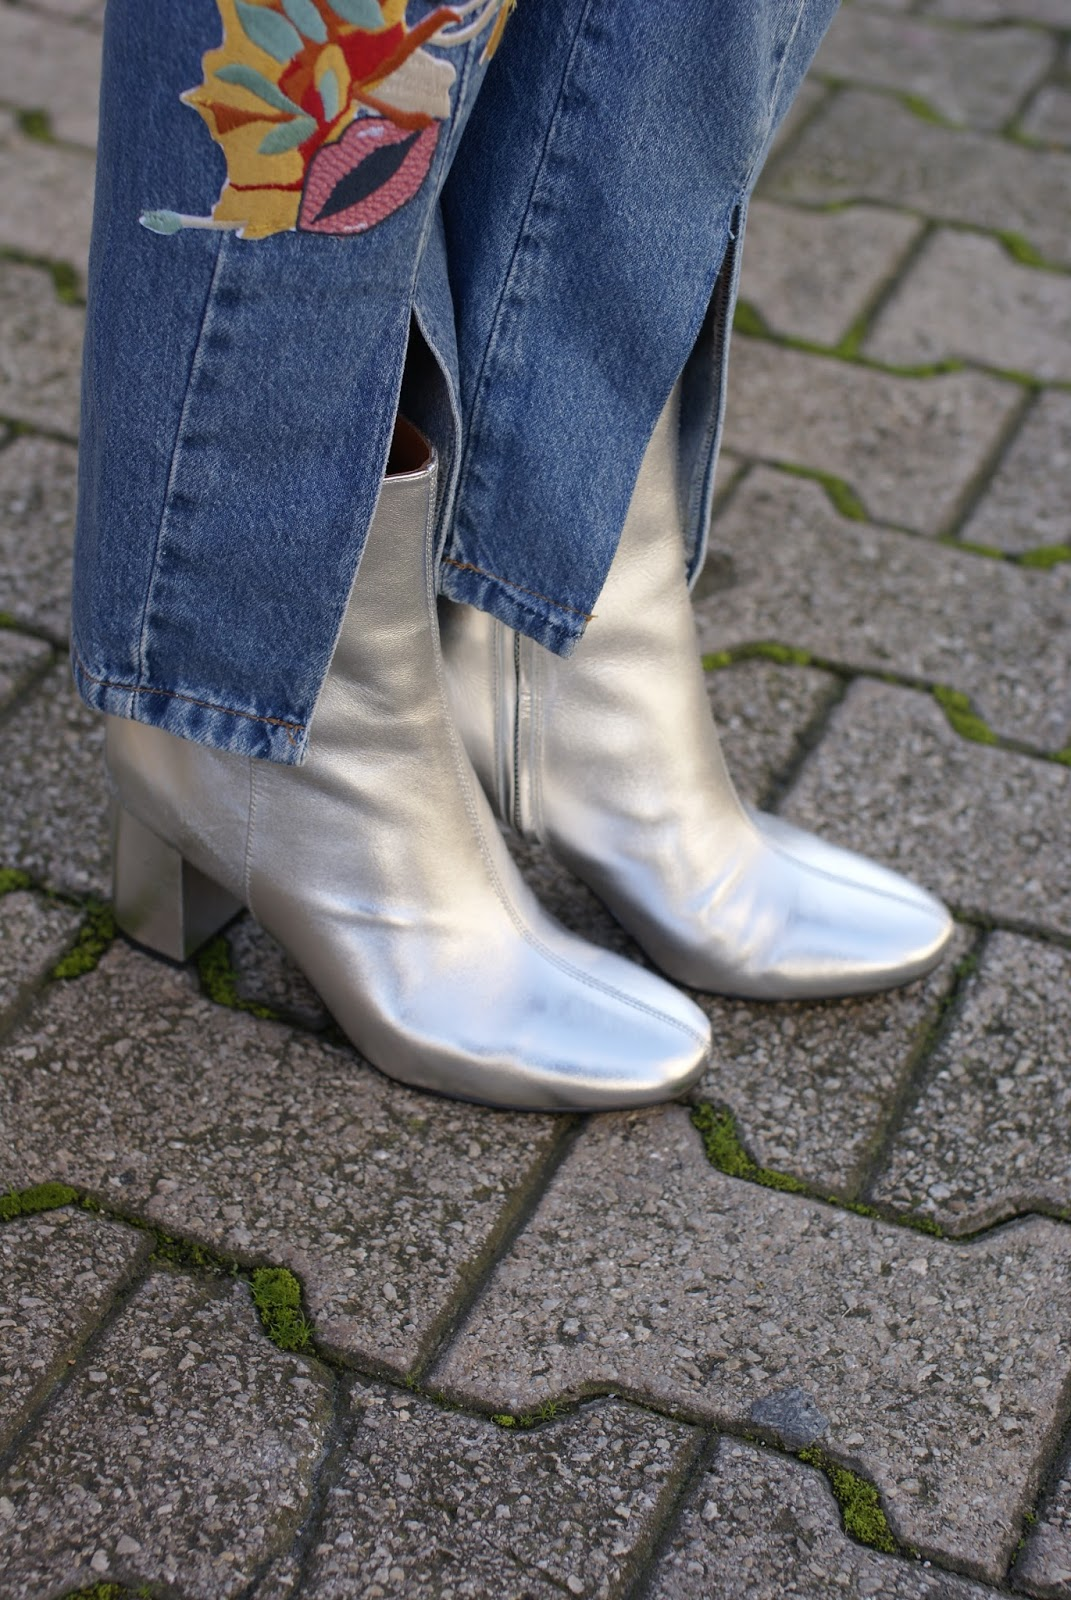 & Other Stories silver ankle boots on Fashion and Cookies fashion blog, fashion blogger style